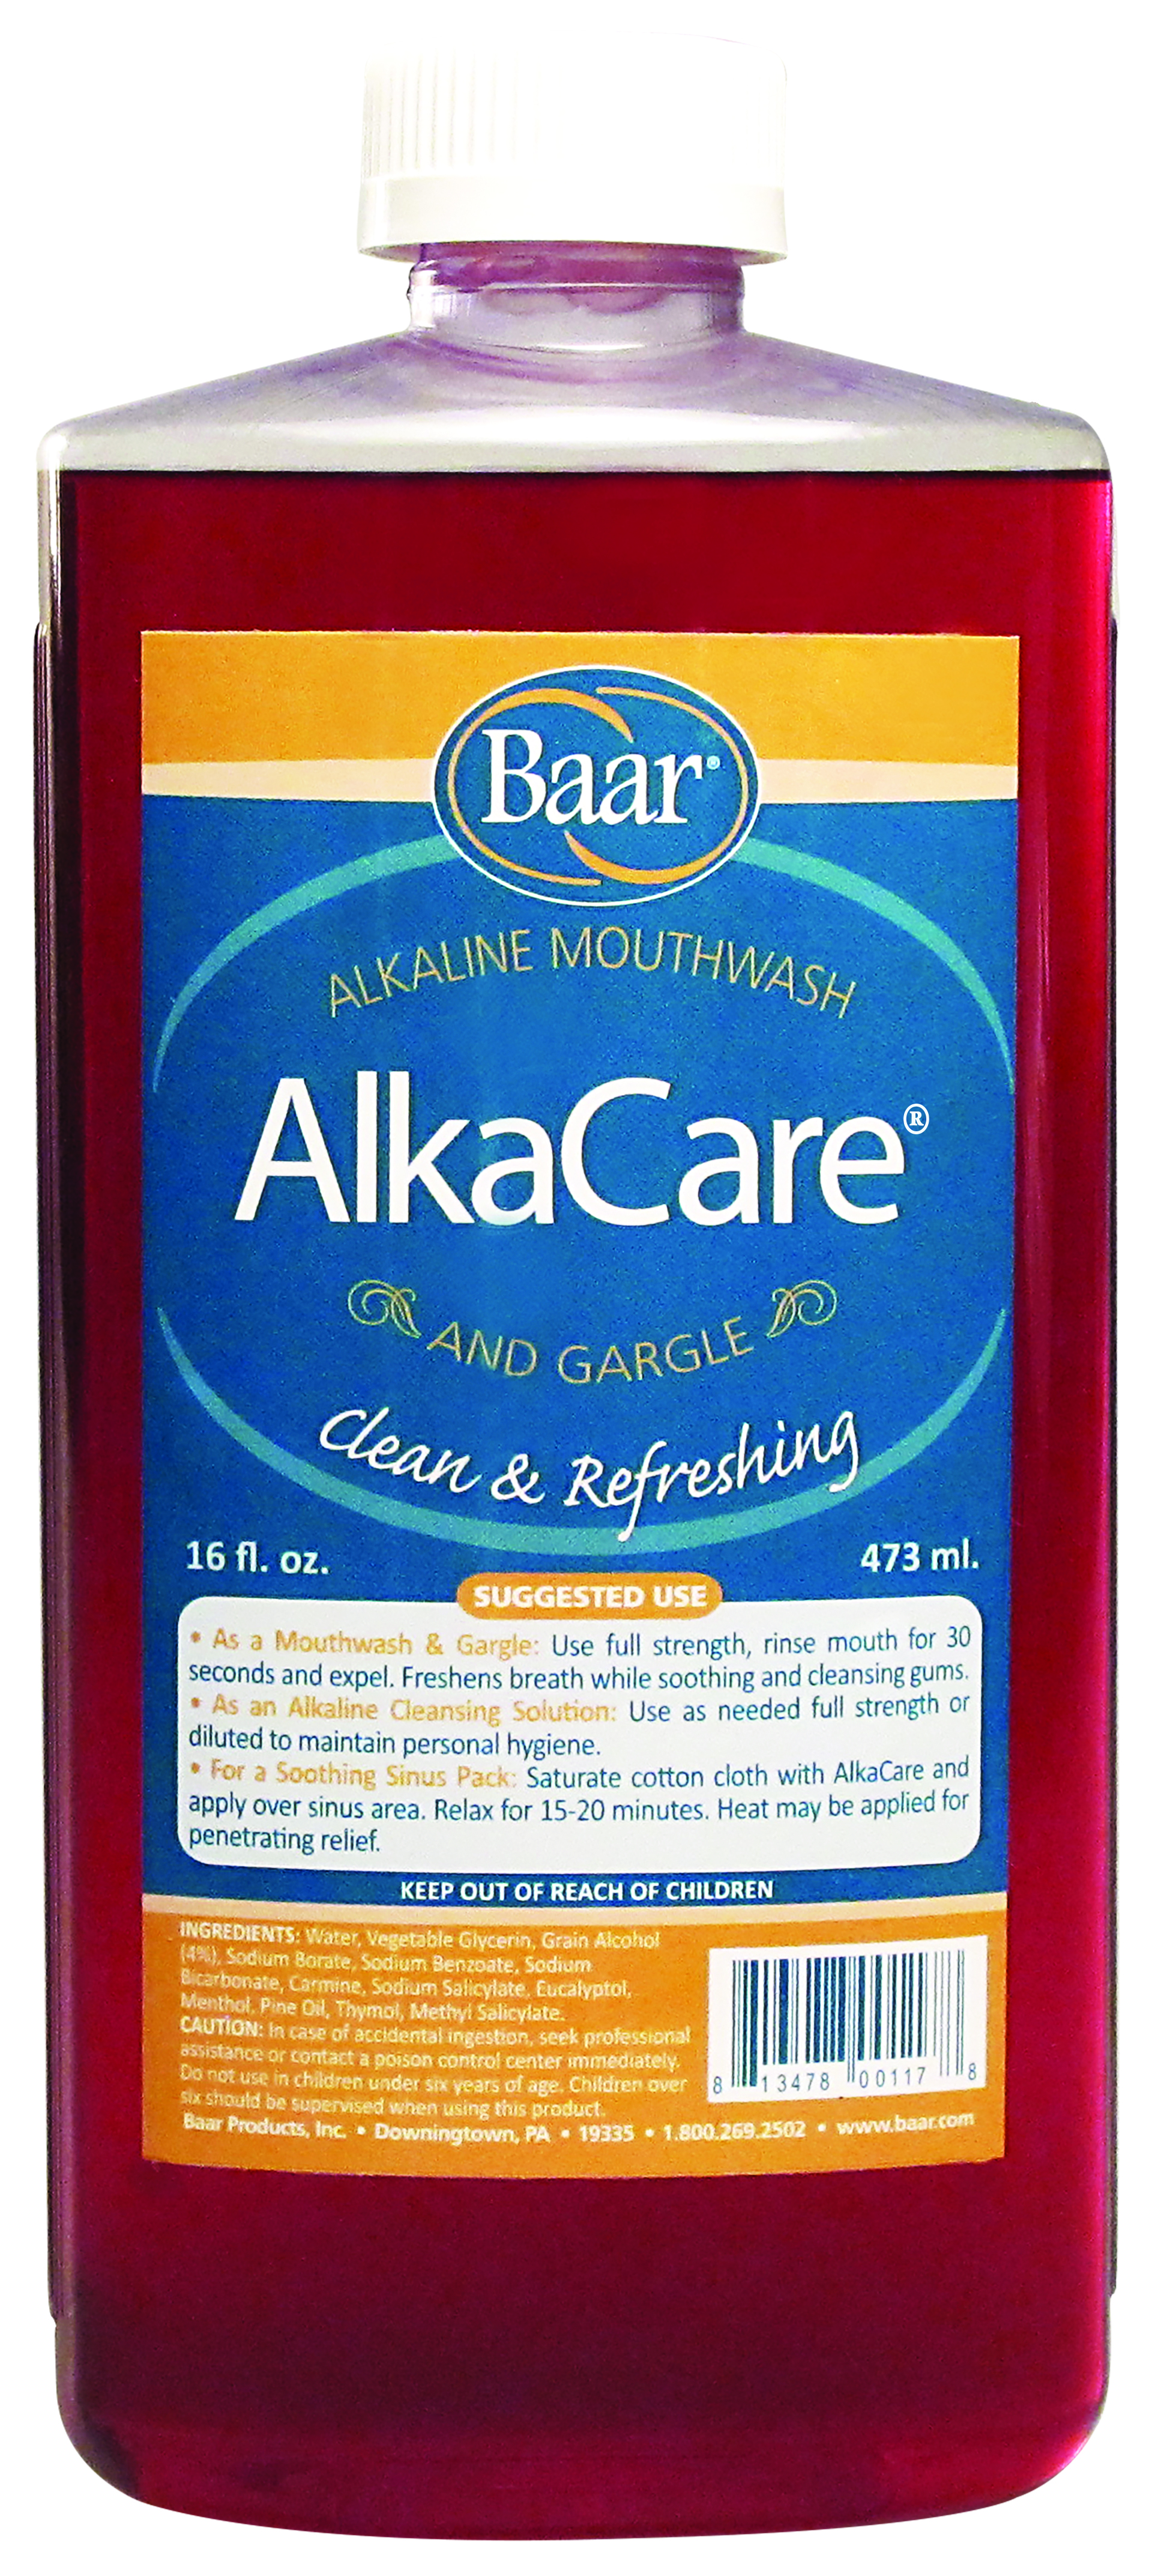 Alkacare for Men's and Women's Health